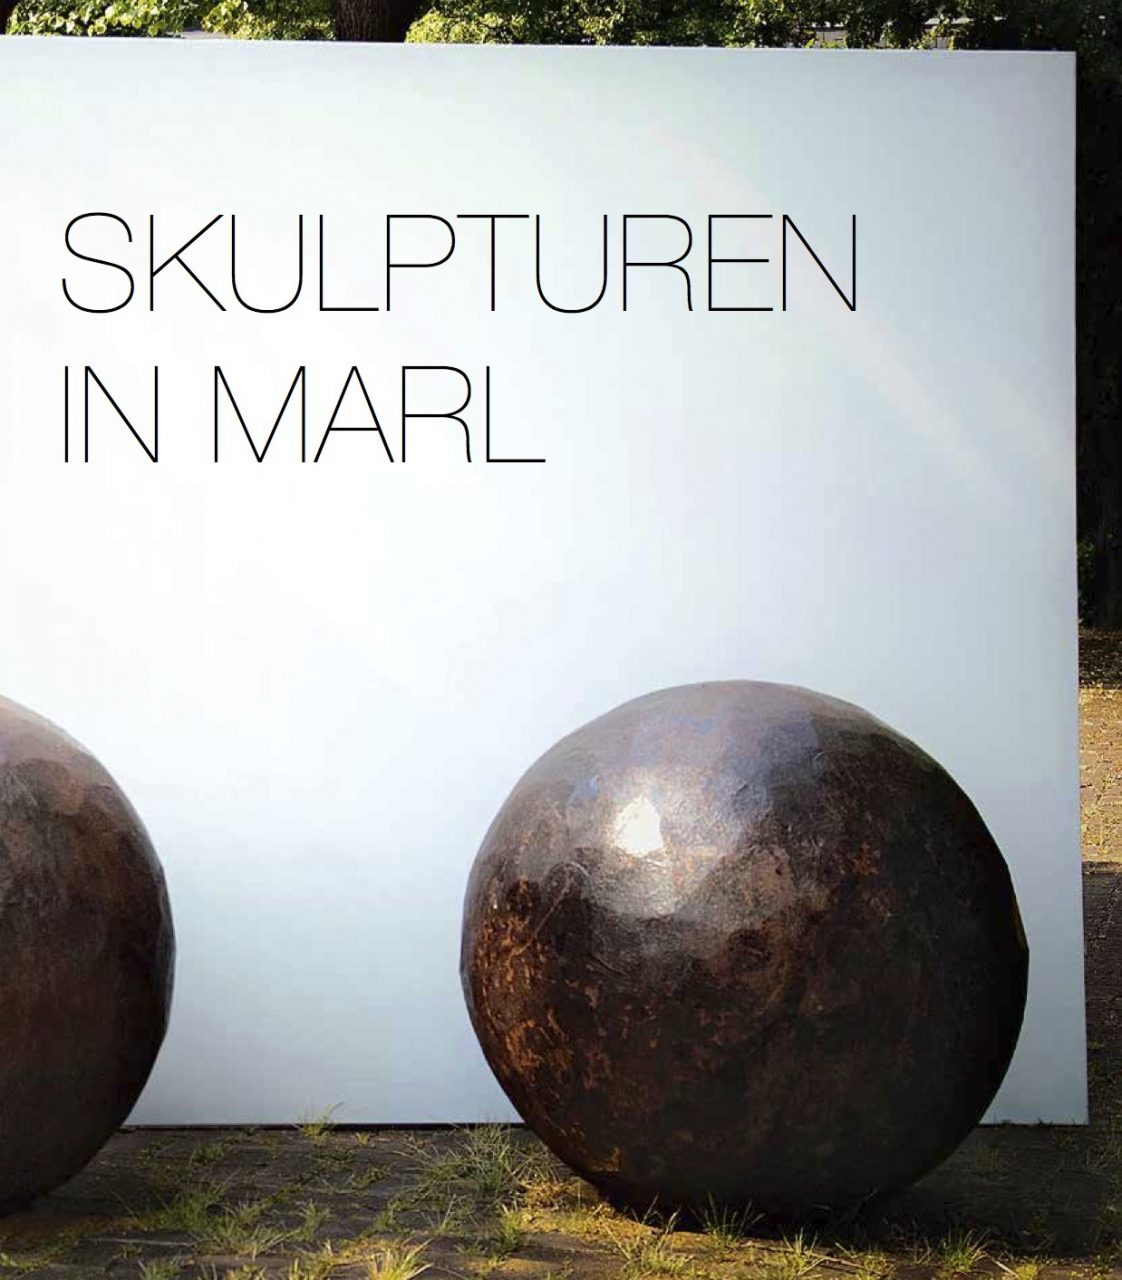 Skulpturen in Marl / Scultpures in Marl. Published by Wienand Verlag Köln